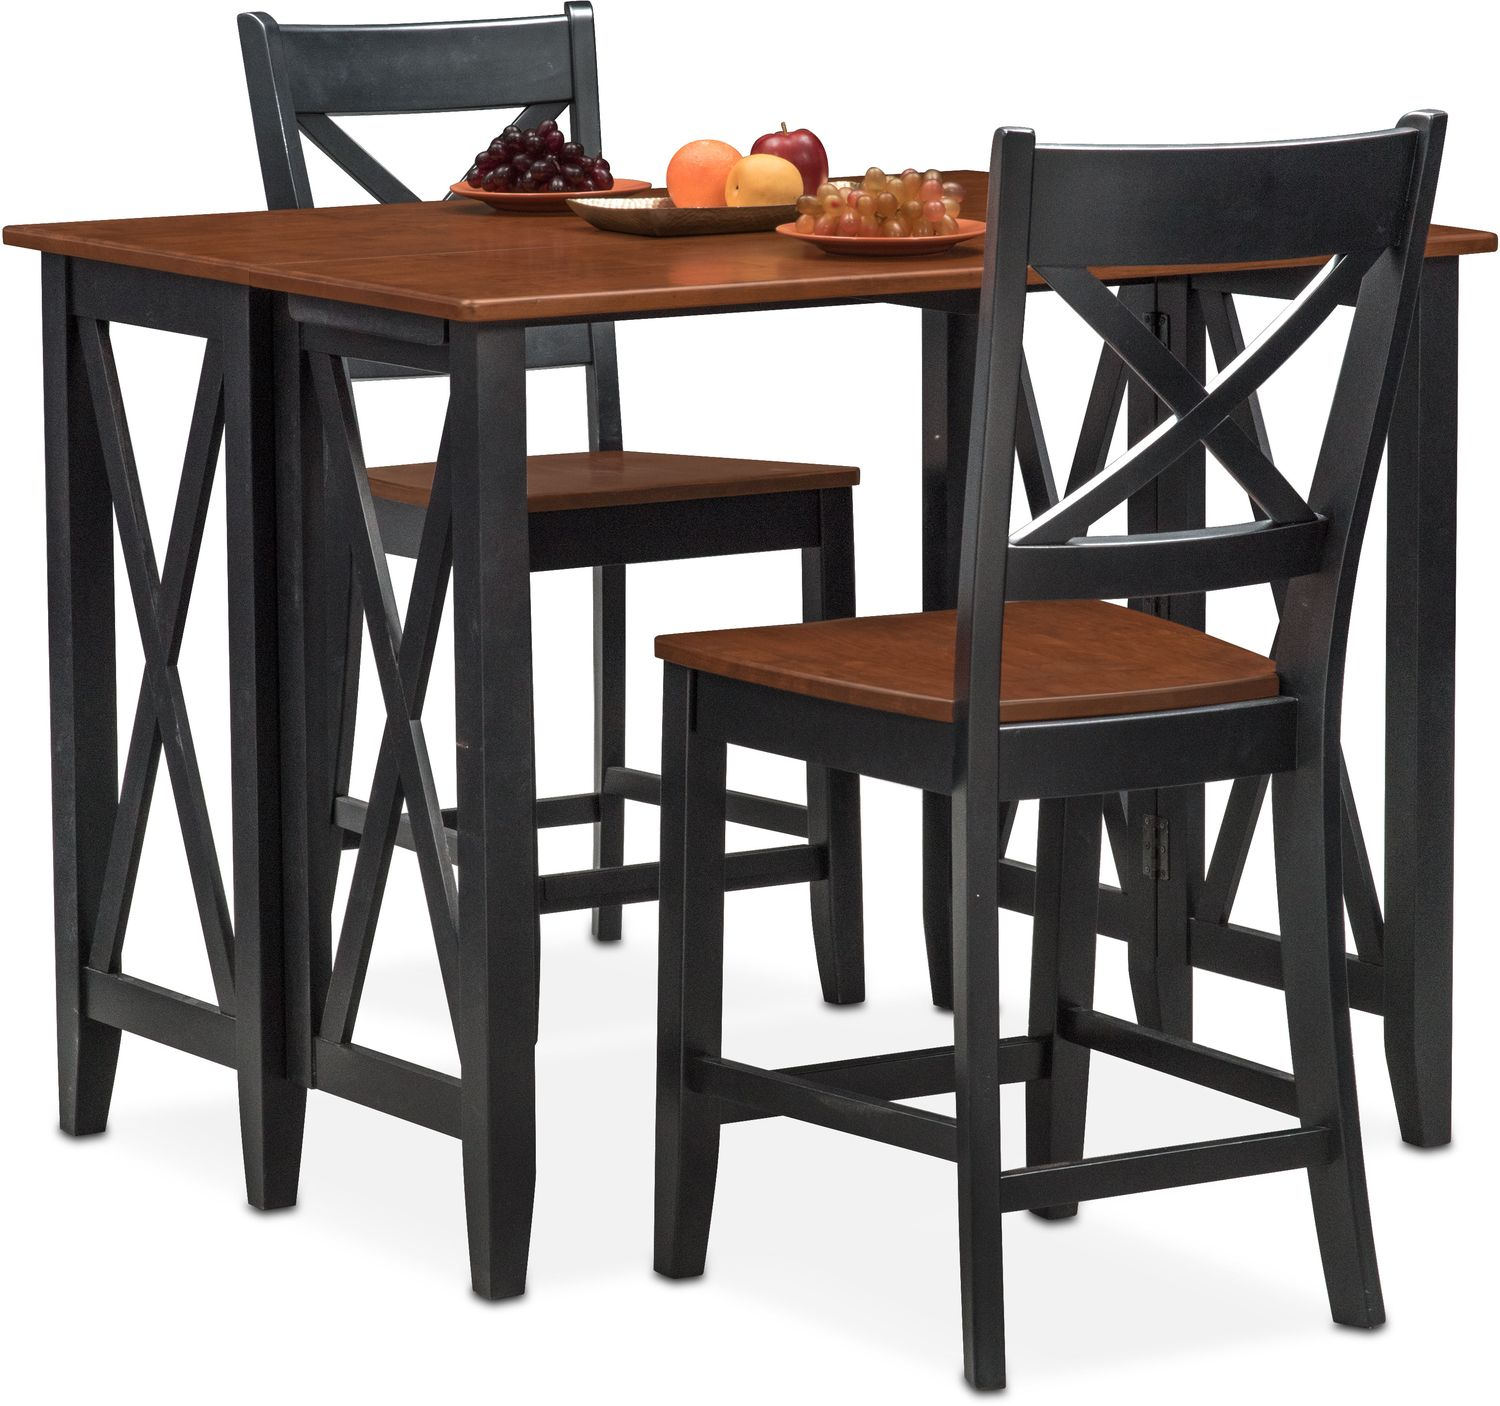 Dining Room Furniture - Nantucket Breakfast Bar and 2 Counter-Height Side Chairs - Black and Cherry